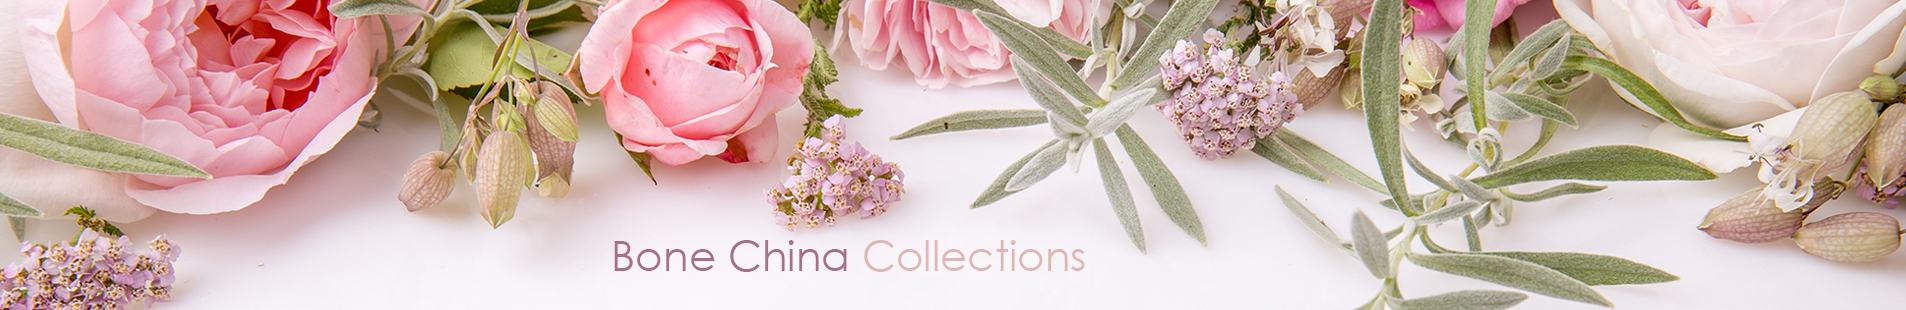 Bone China Collections